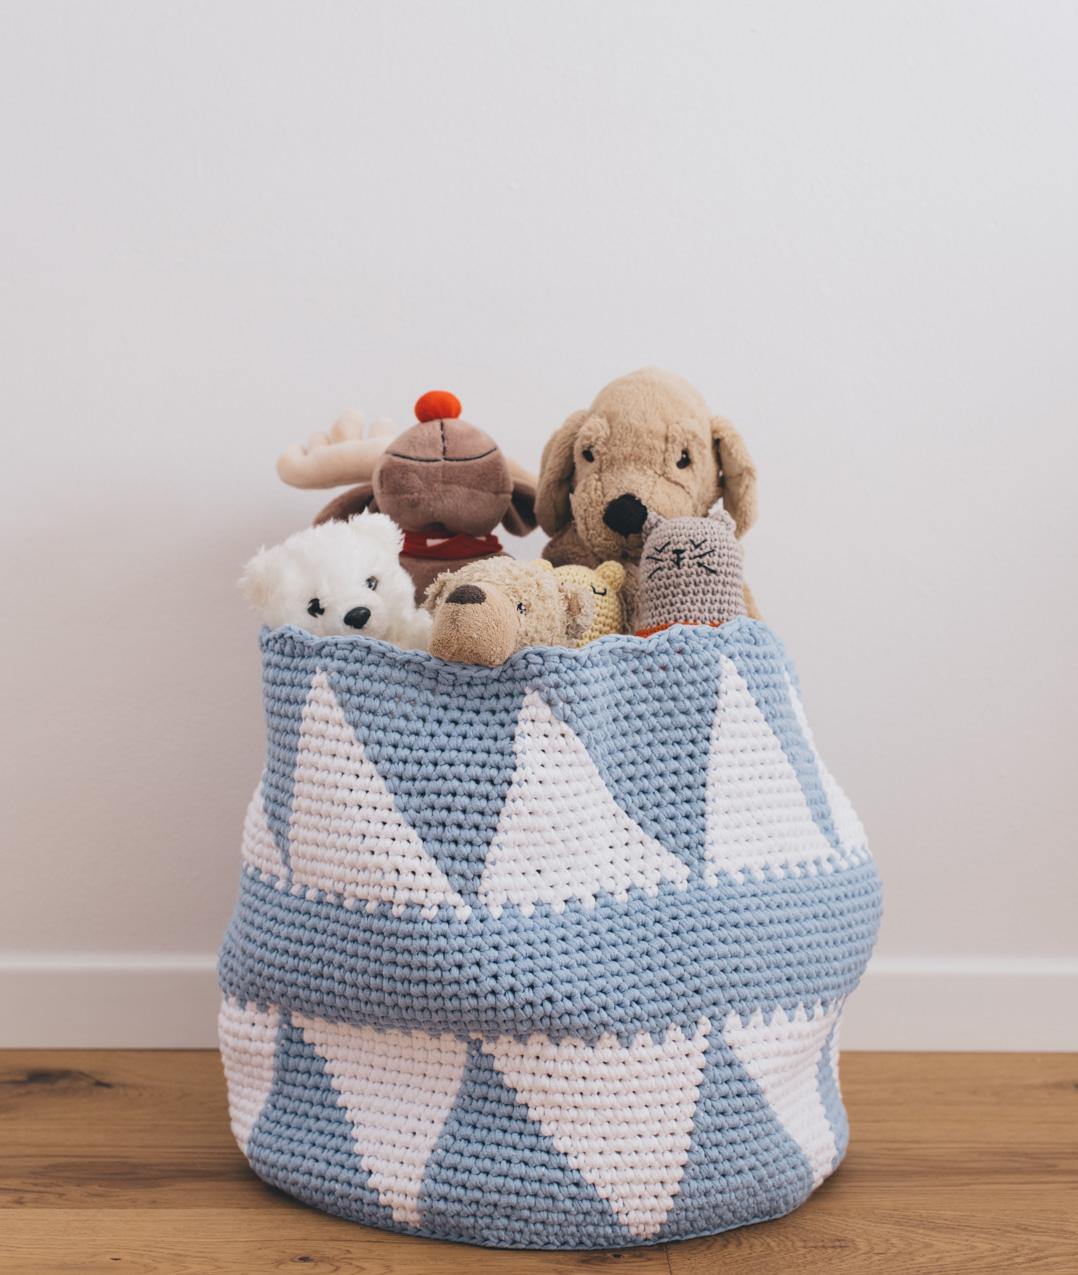 Collezione Home Decor Baby - CasaCollezione Home Decor Baby - Casa - HAPPY TOYS BASKET - 1